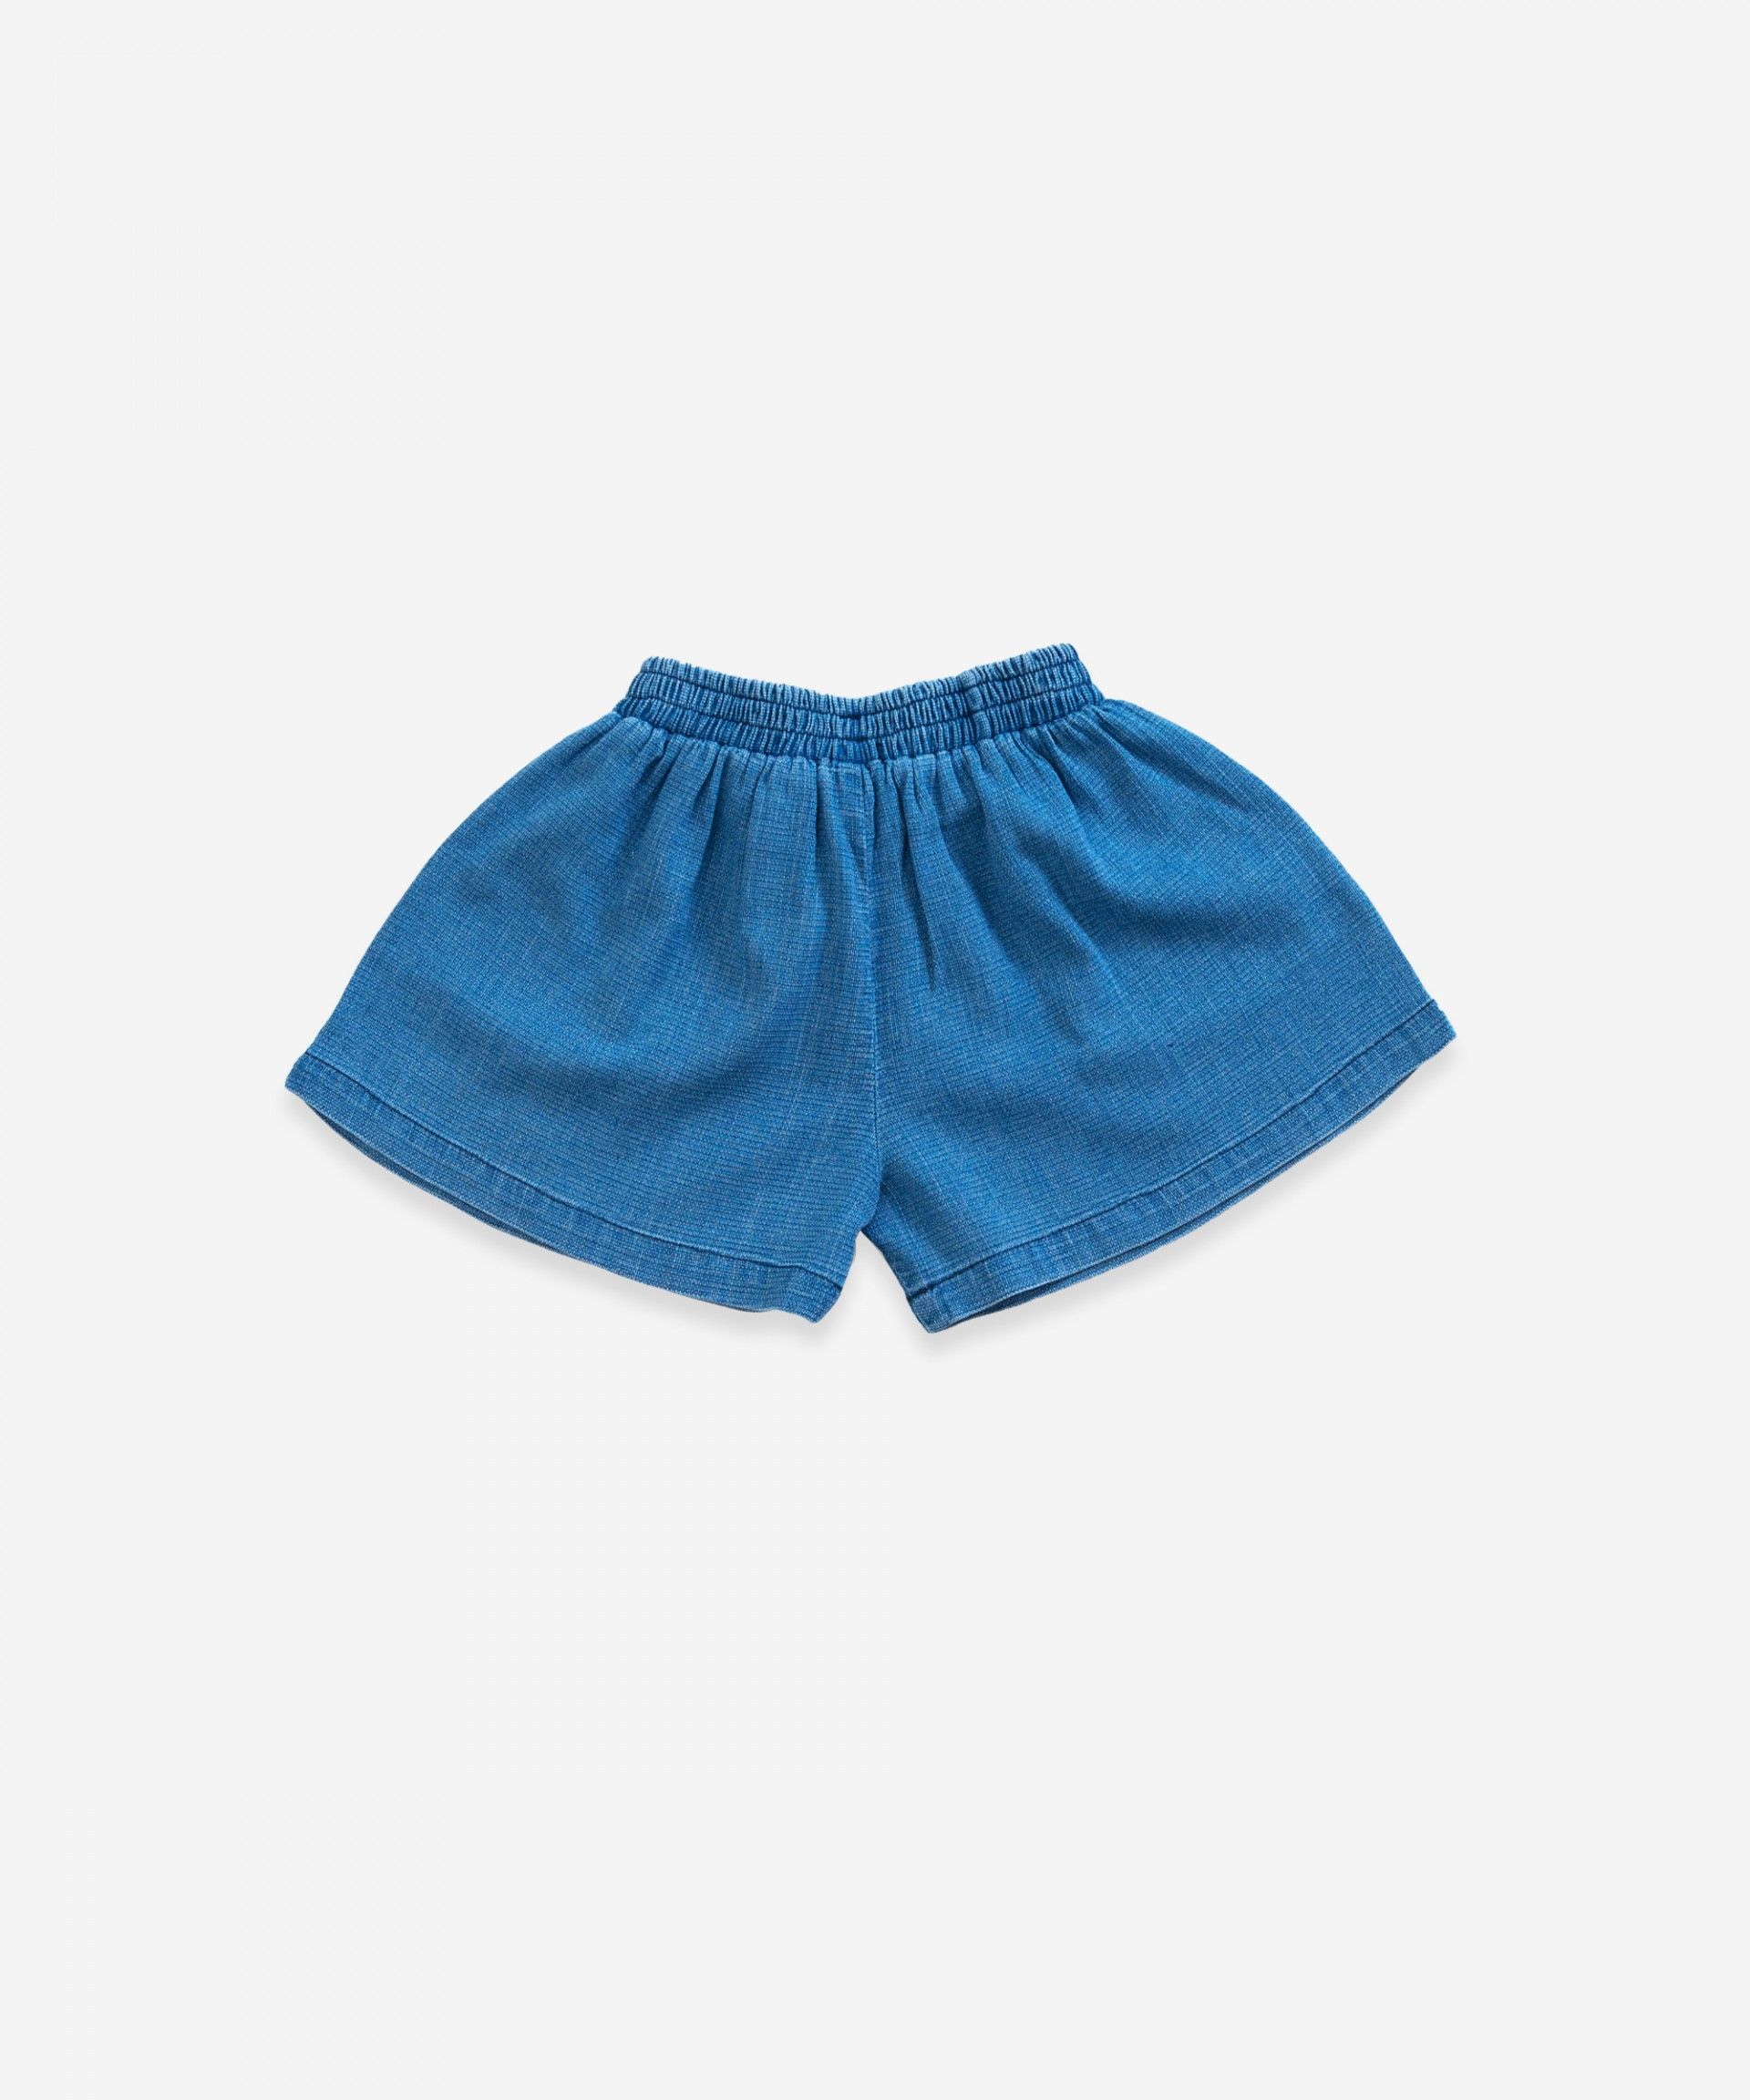 Denim shorts with decorative ribbon | Weaving